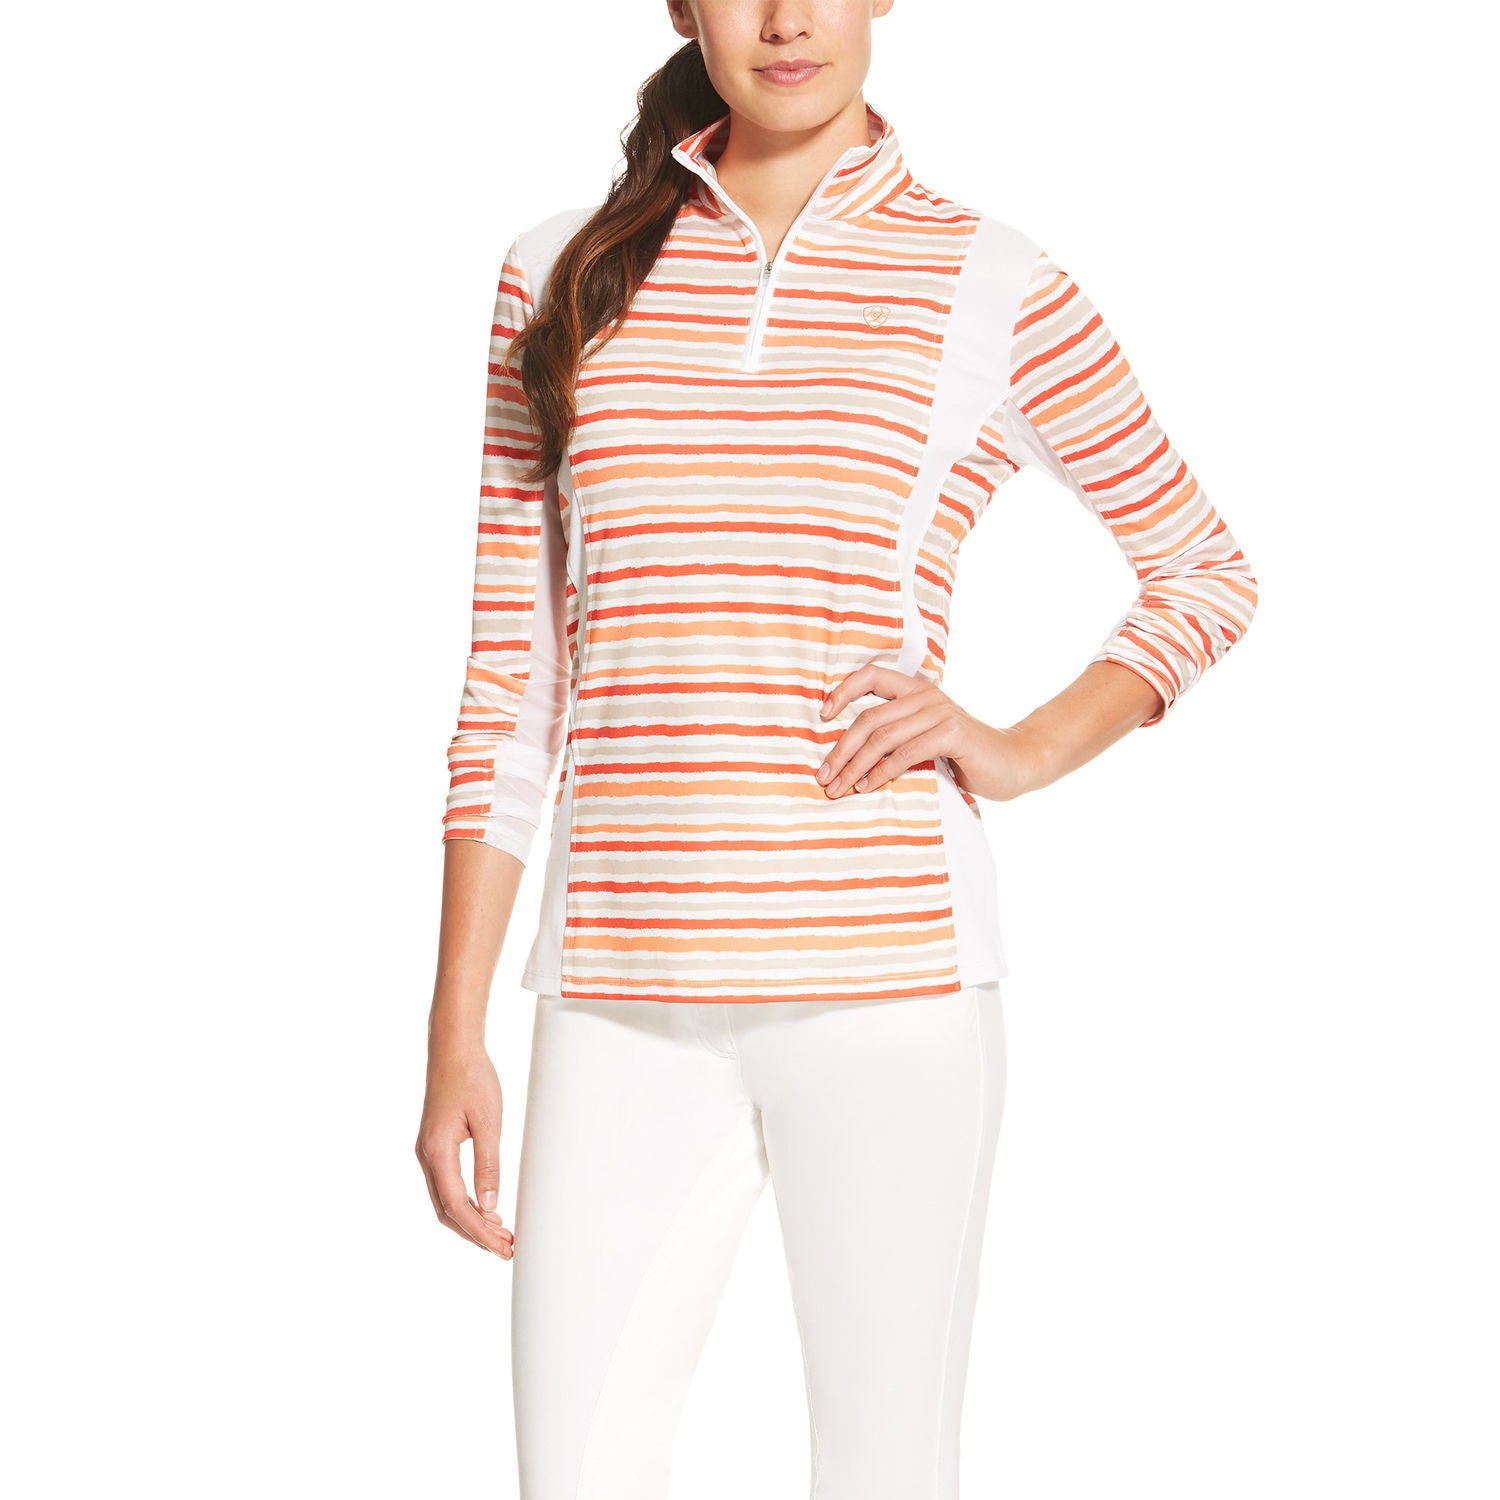 Ariat Sunstopper 1/4 Zip Top - SALE